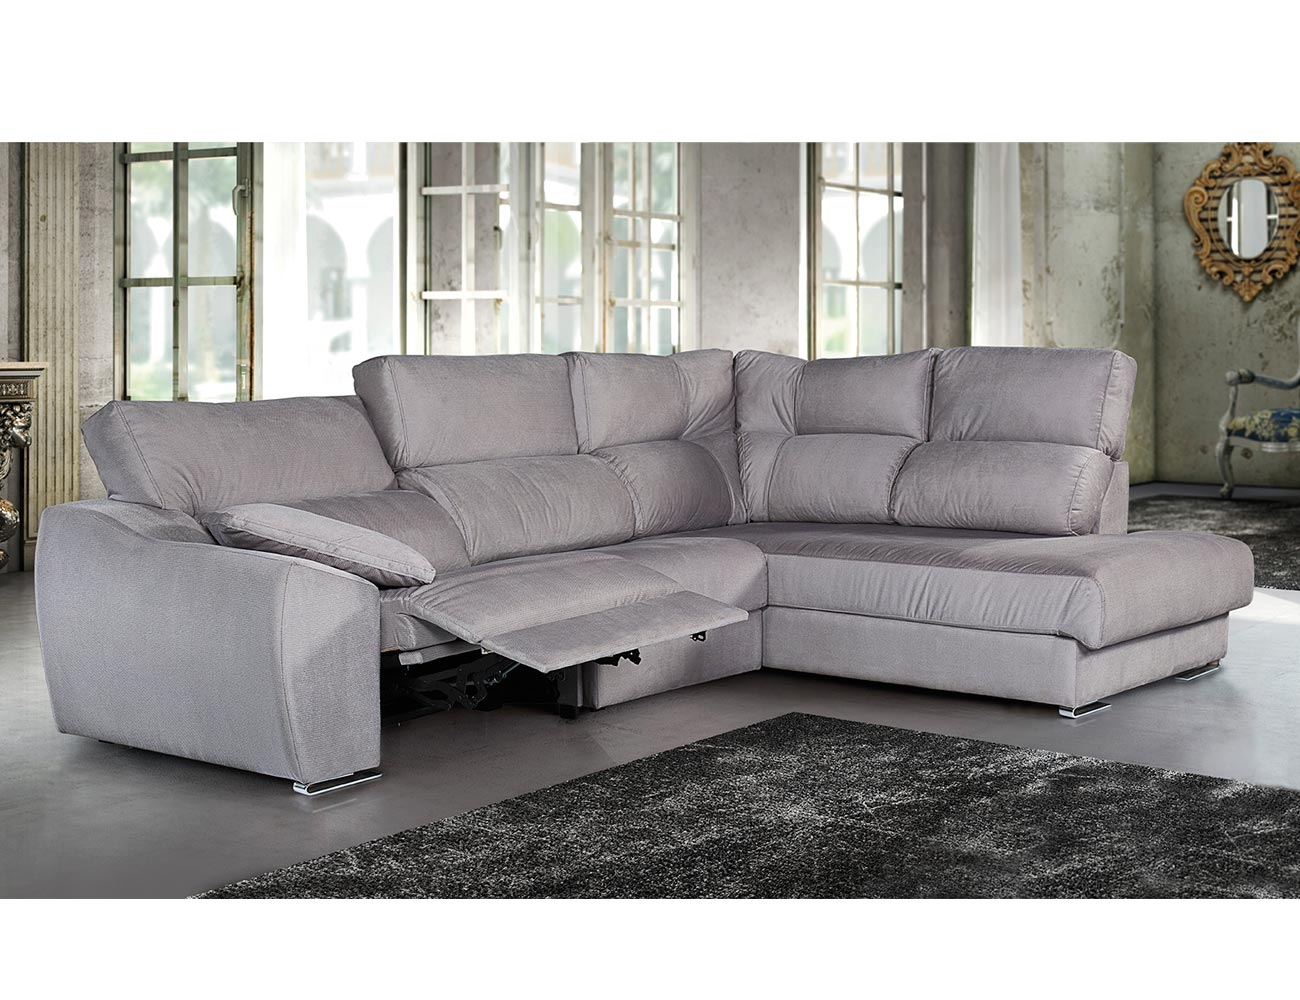 Sofa chaiselongue rincon moderno relax electrico